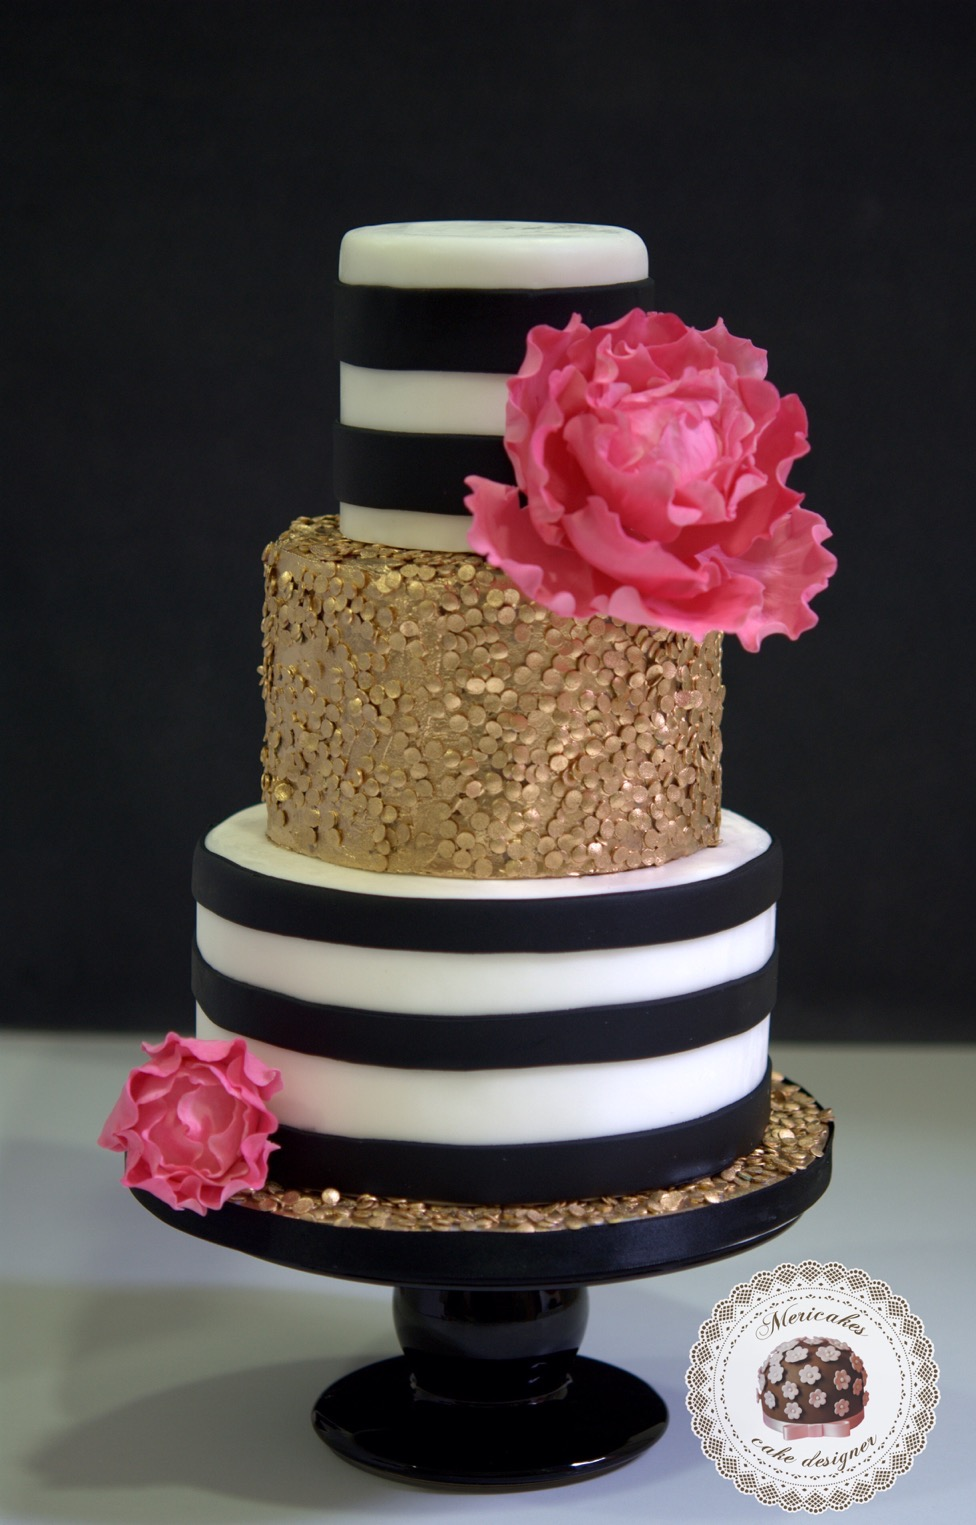 sequins-stripes-wedding-cake-peony-gold-oro-lentejuelas-rayas-sugarcraft-fondant-tarta-de-boda-barcelona-3